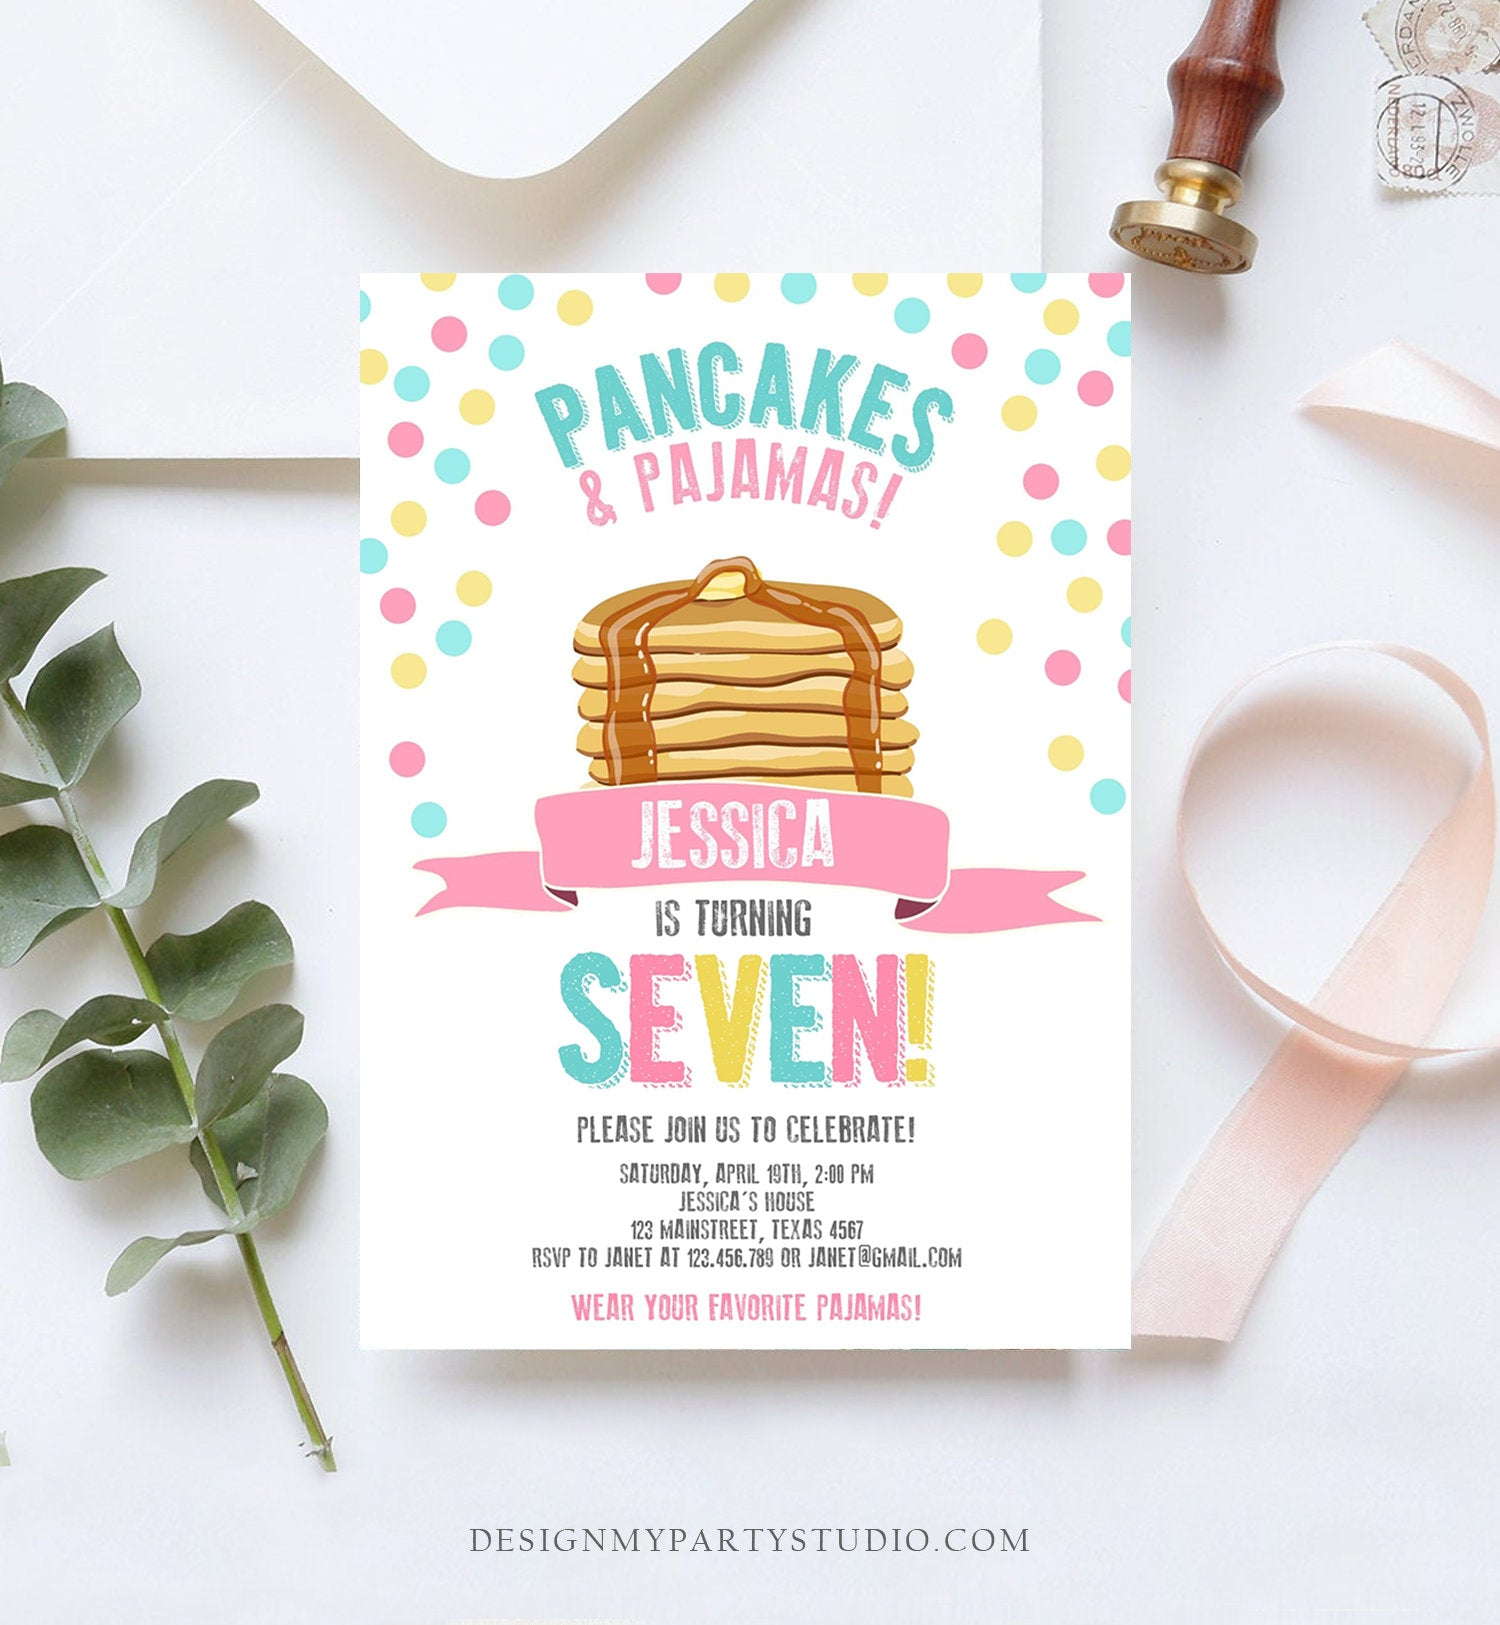 Editable Pancakes and Pajamas Invitation Pancake Pajamas Birthday Party Girl Pink Slumber Party Printable Template Corjl Digital 0286